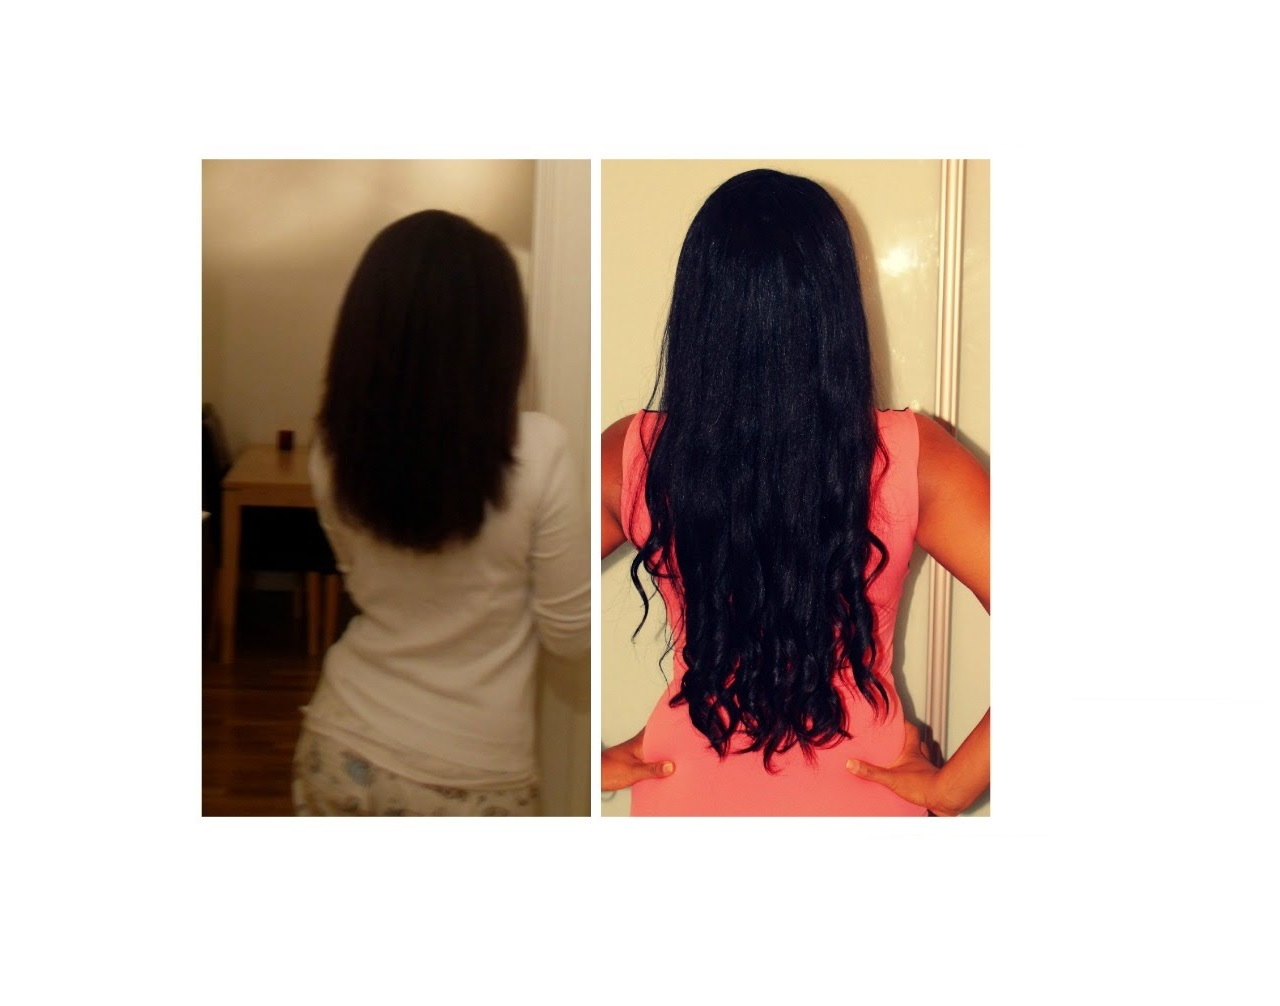 msm-natural-hair-growth-results-before-and-after-pictures topical growth oil and biotin